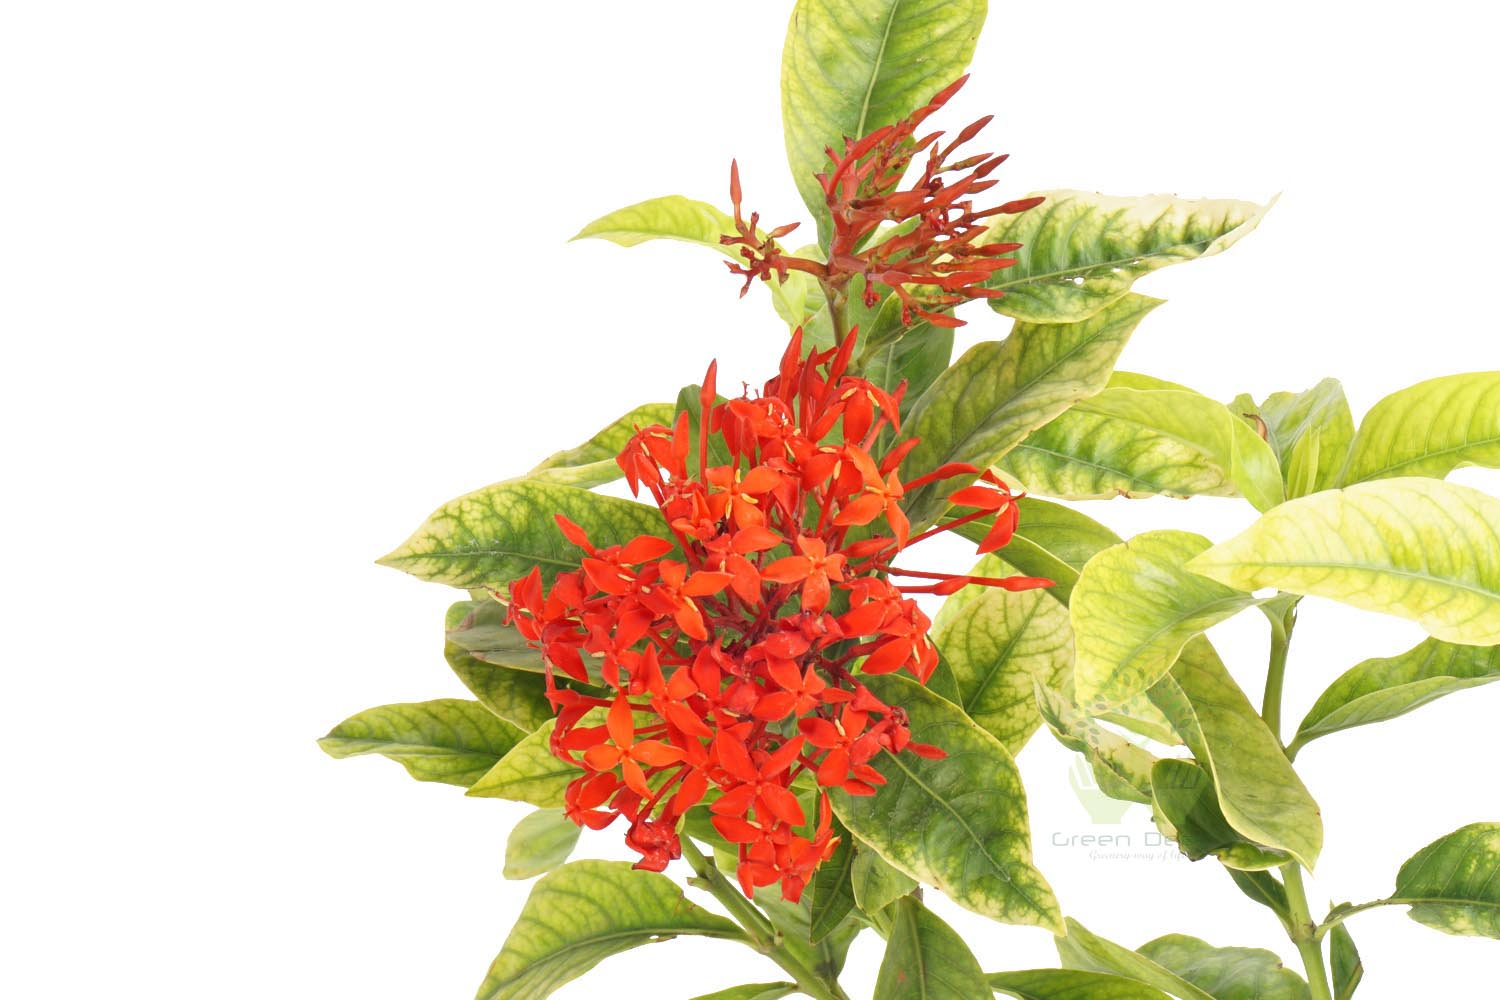 Buy Ixora Plant Leaves View in Delhi NCR by the best online nursery shop Greendecor.